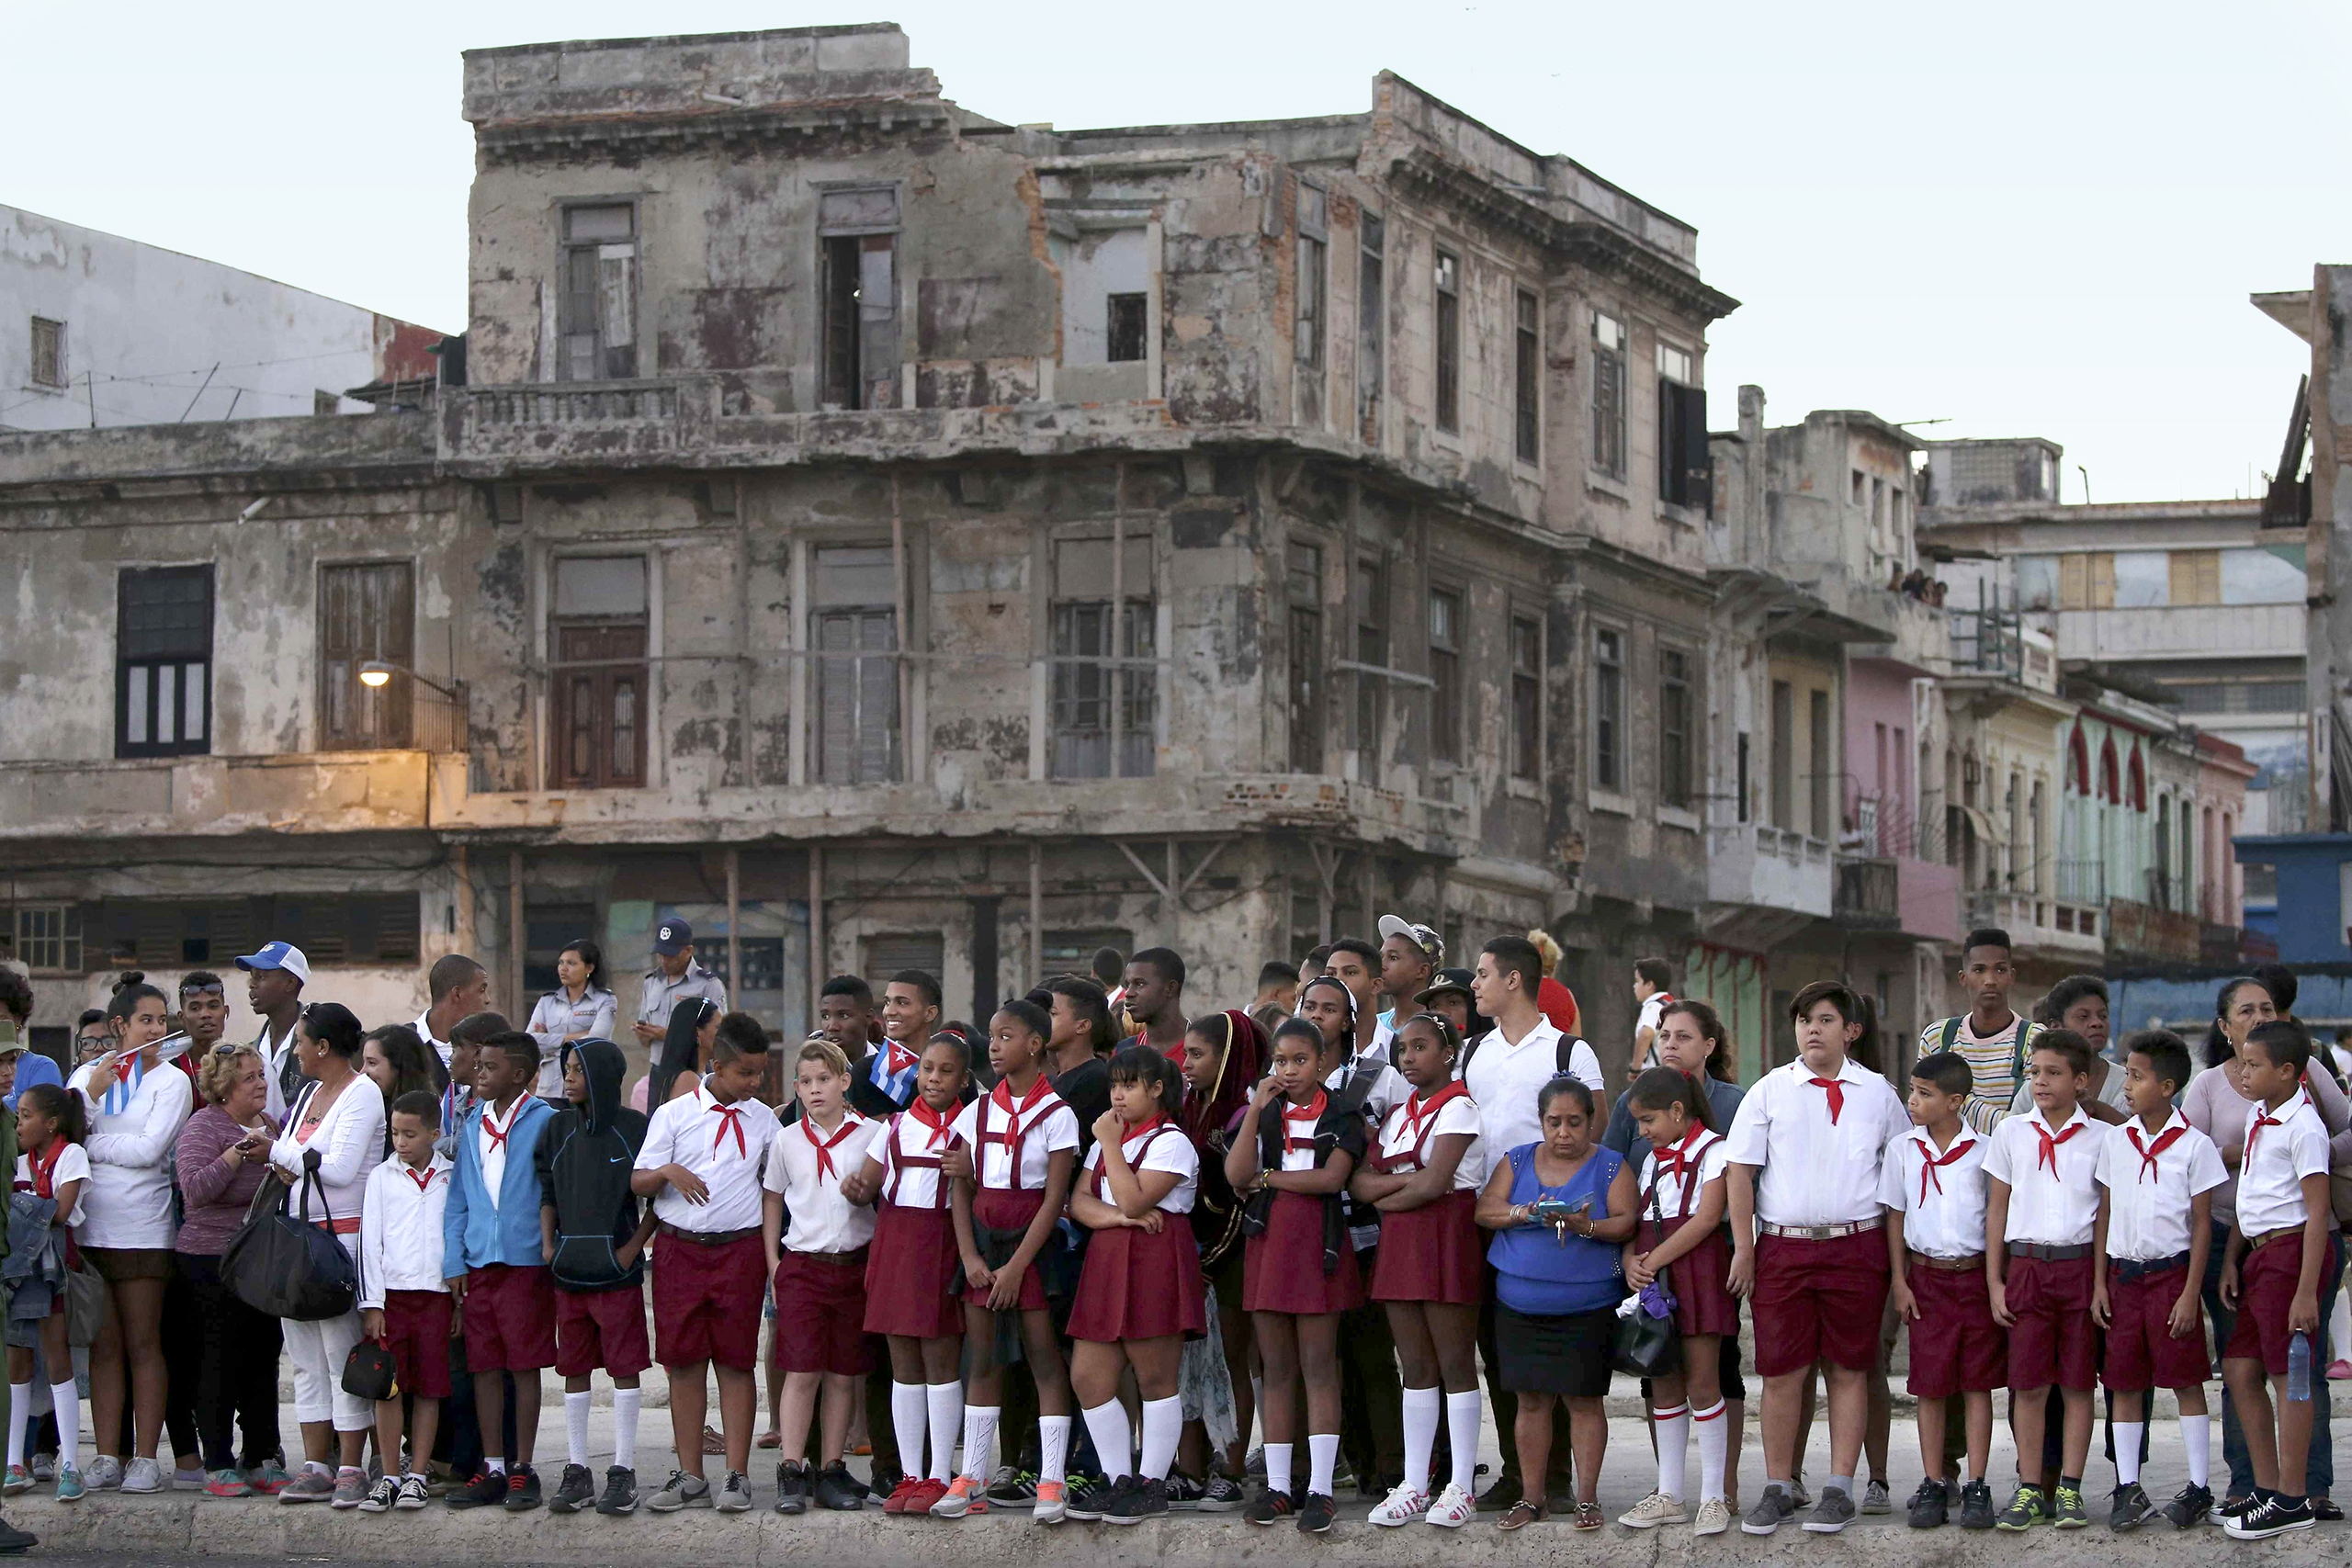 Schoolgirls in Havana on Nov. 30 await passage of the military vehicles carrying Castro's ashes on a three-day journey to Santiago, Cuba